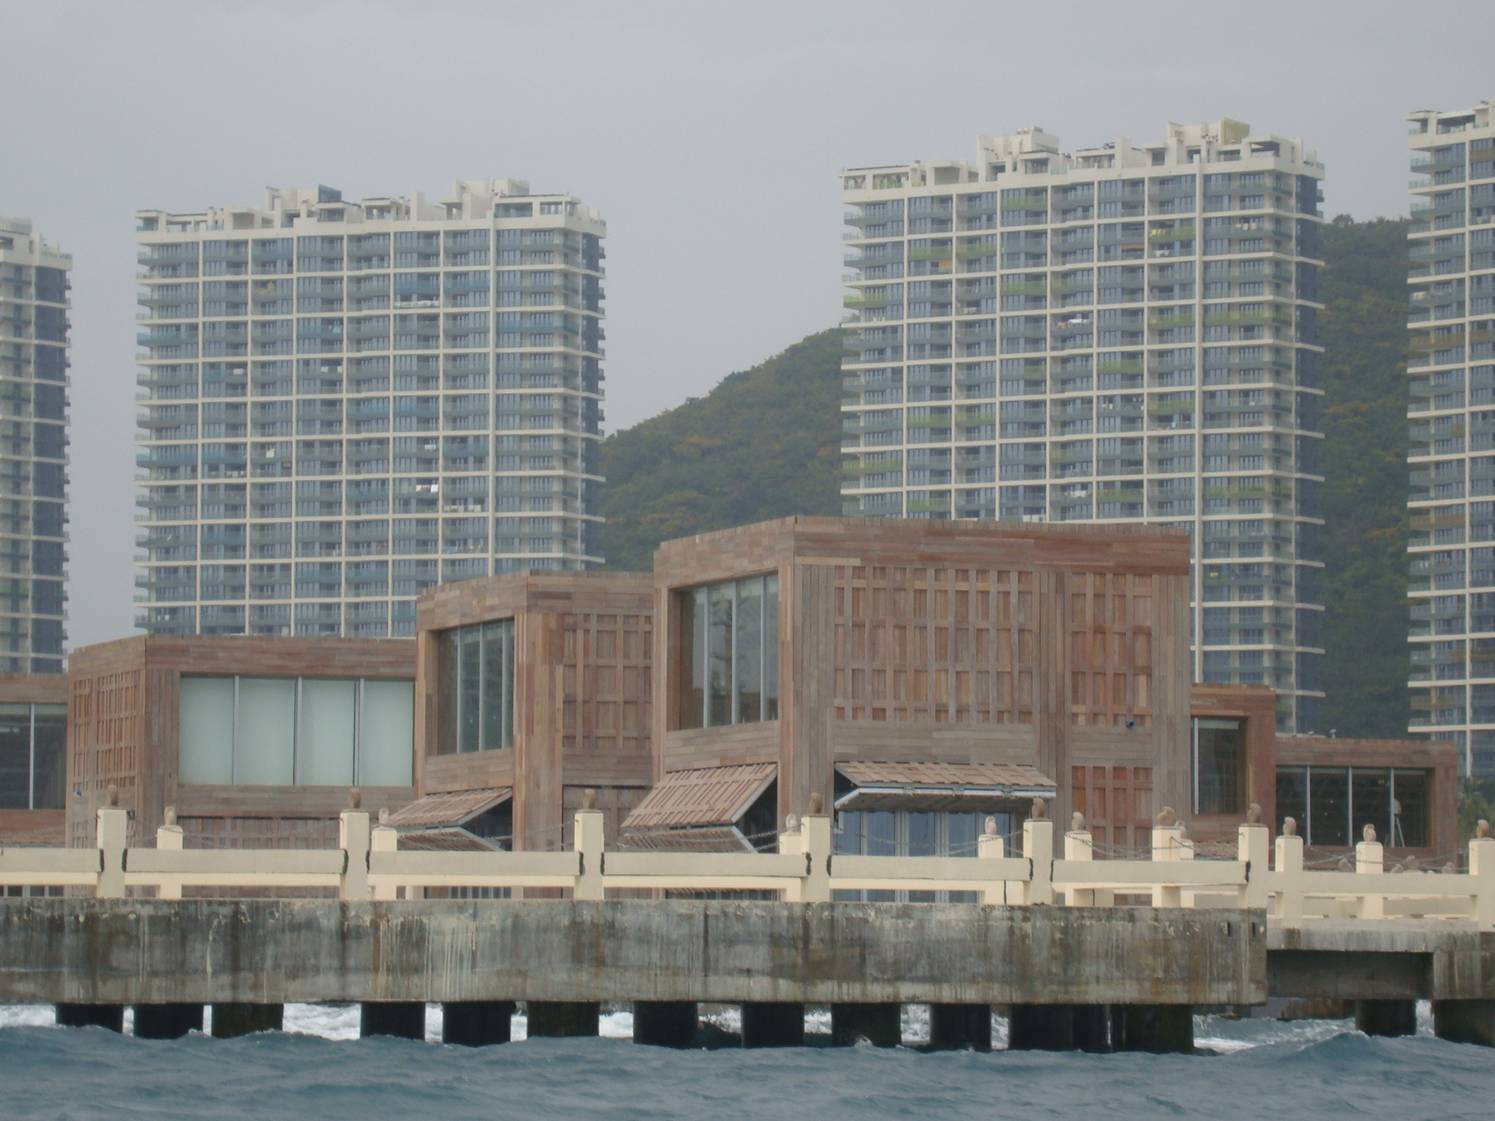 Picture:  Float houses in the marina of Sanya, Hainan Island, China  My guess is they are expensive.